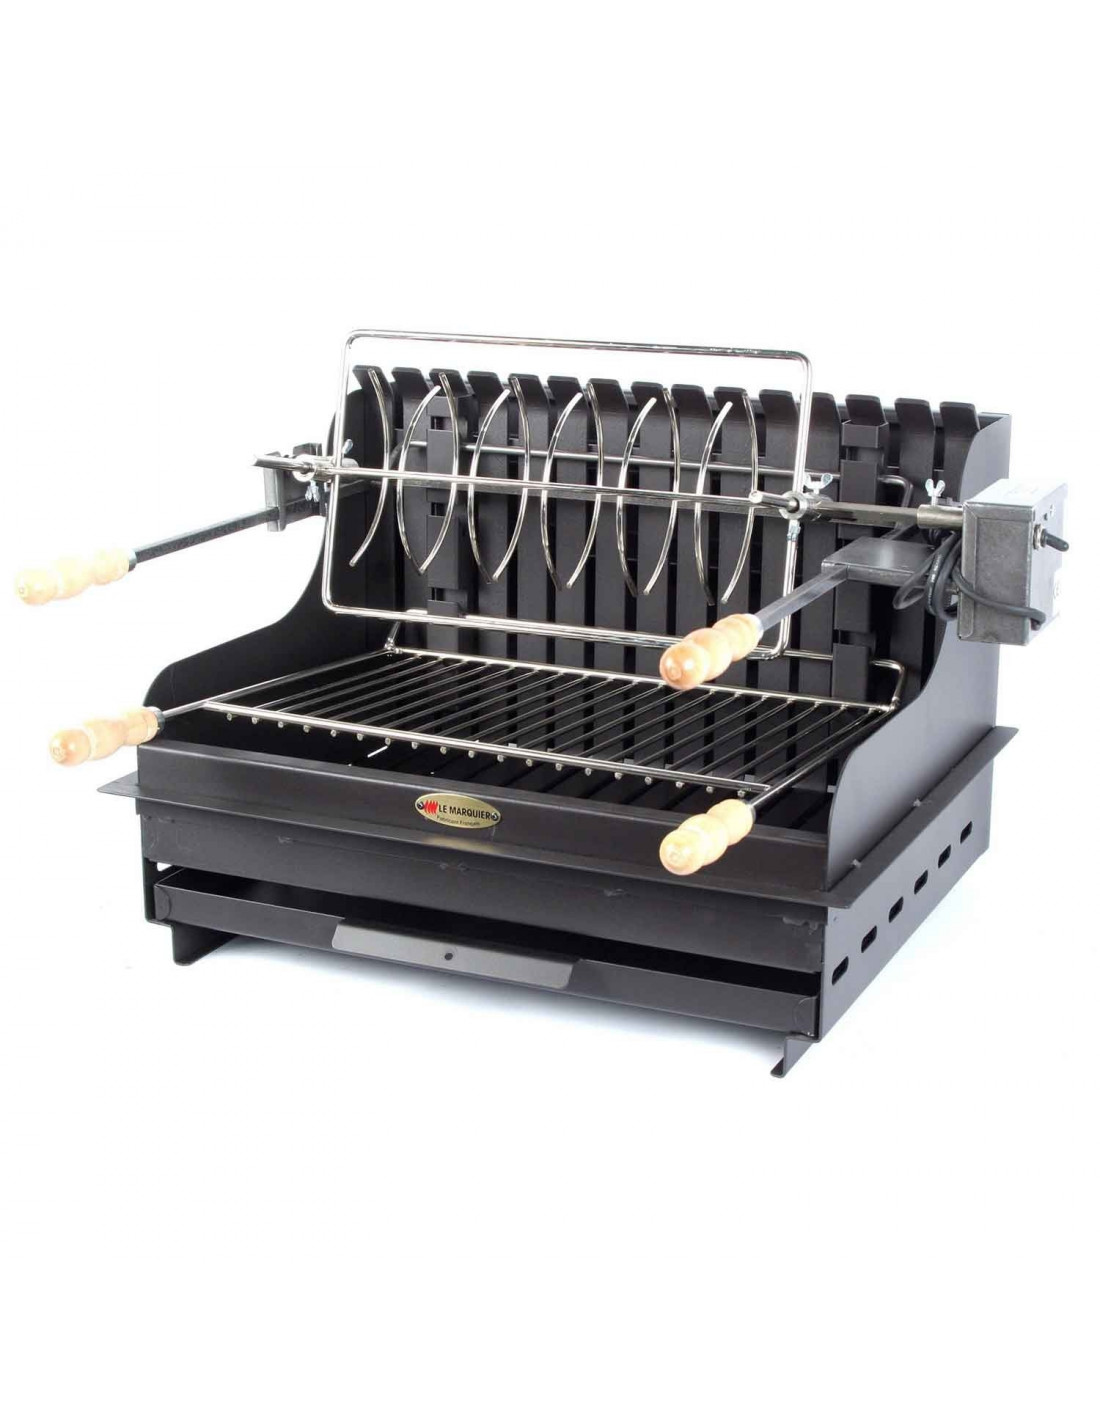 Barbecue charbon encastrable le marquier mendy - Barbecue exterieur castorama ...